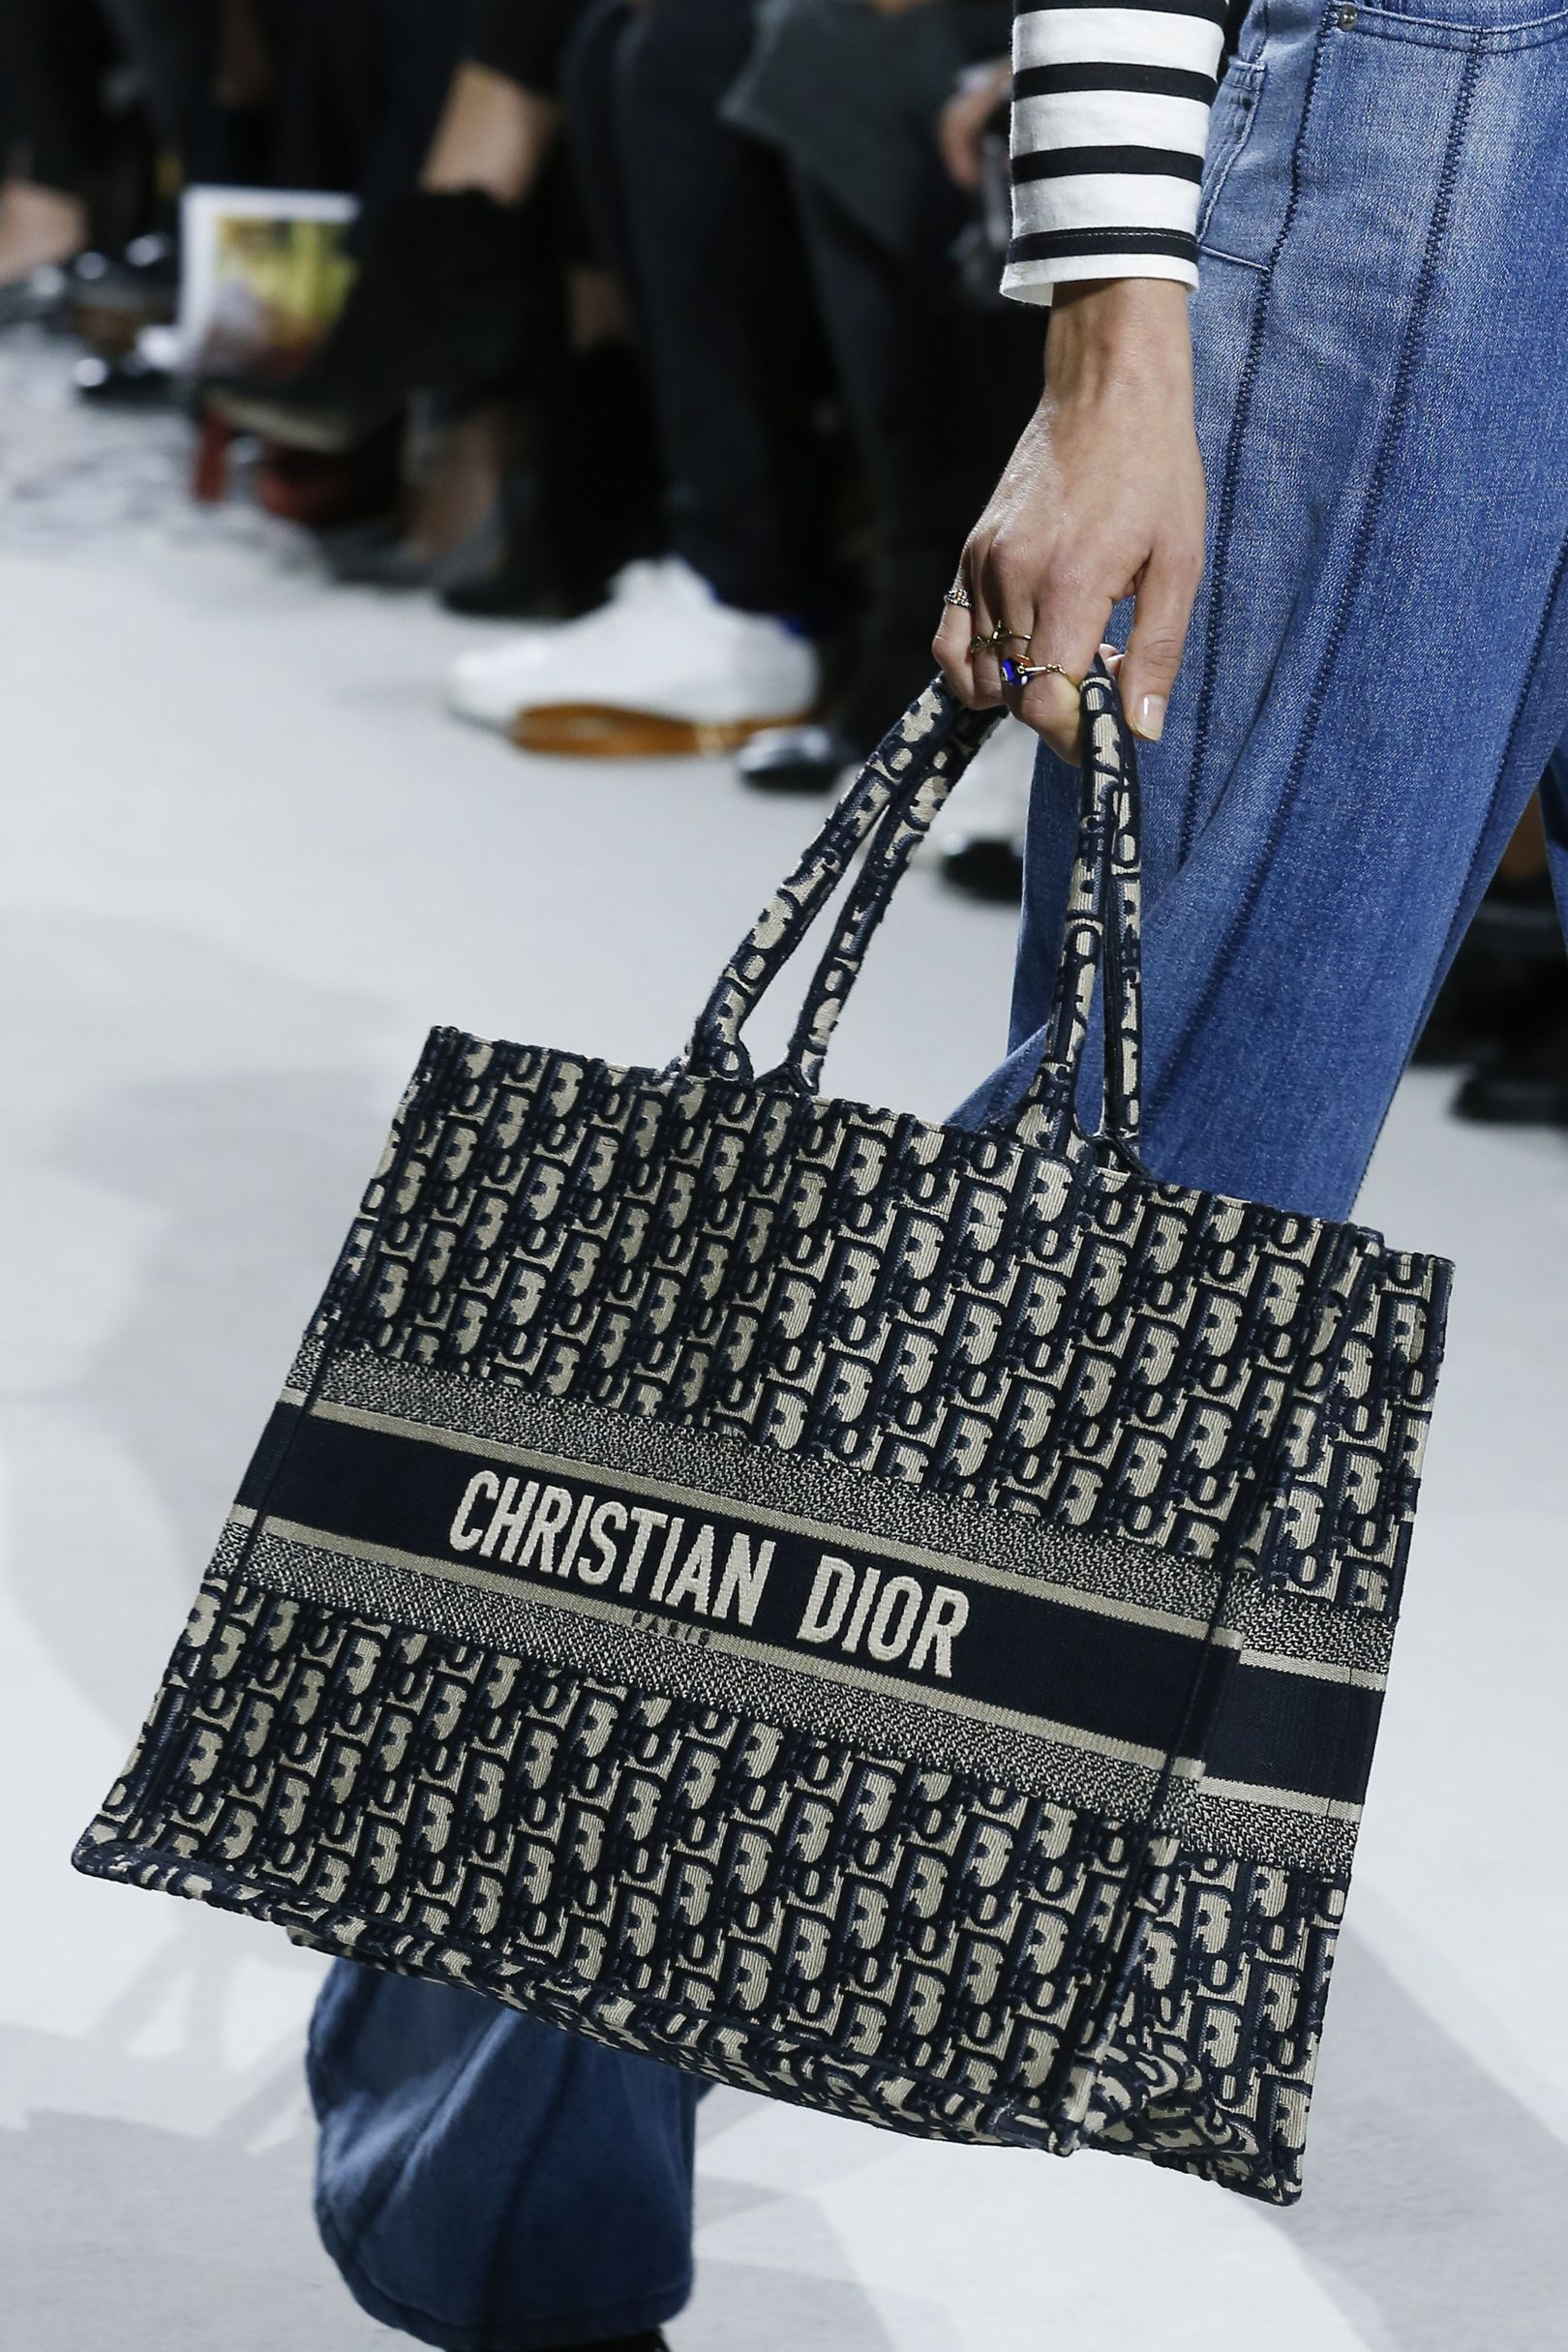 SS18 Christian Dior logo shopper tote - perfect size for a shopping trip   chicbags...x 37974fac65f